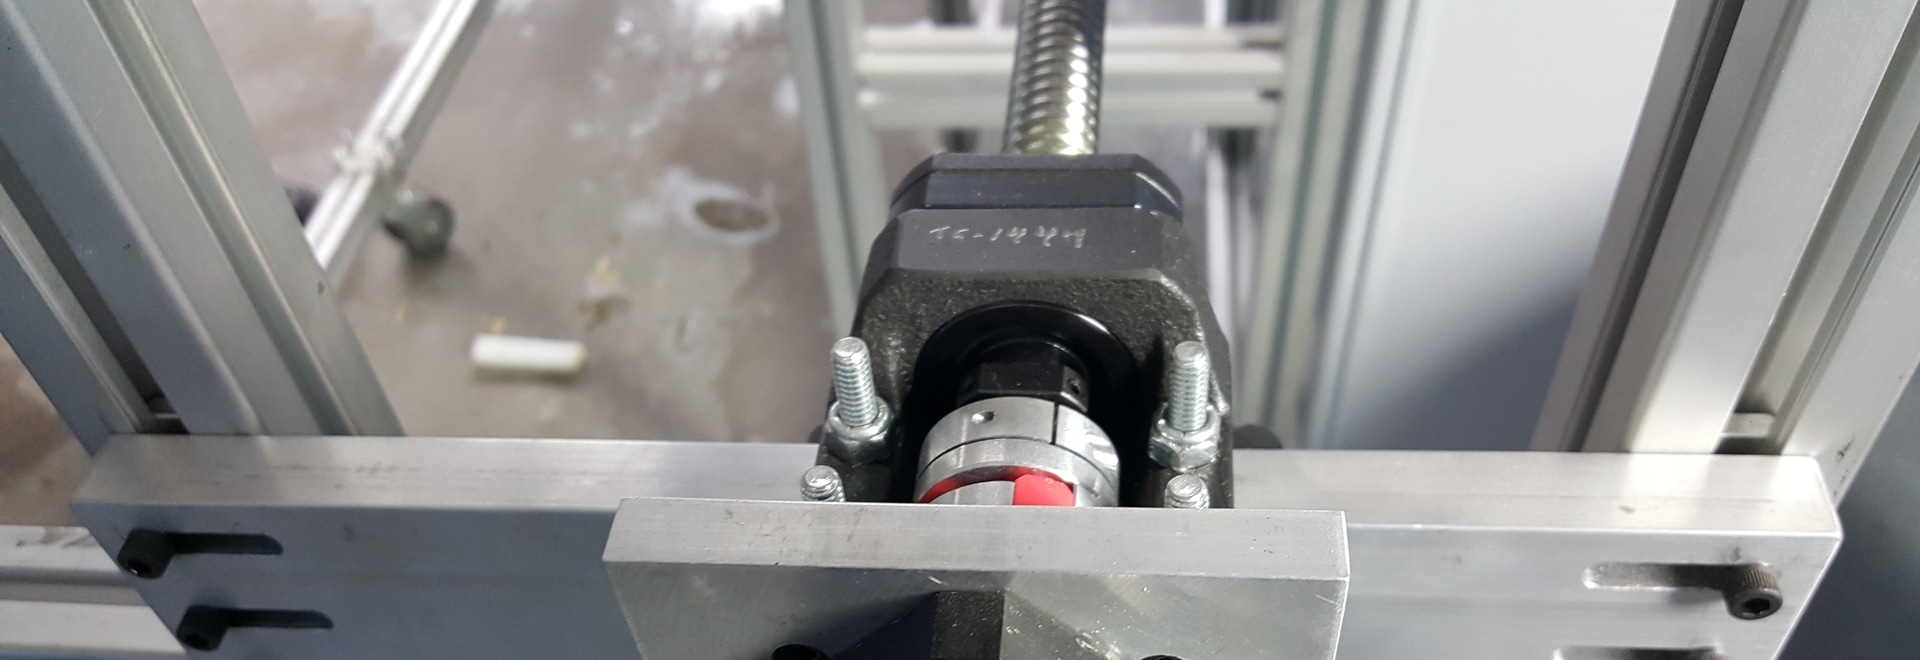 Gear drive and mounting system for the screw